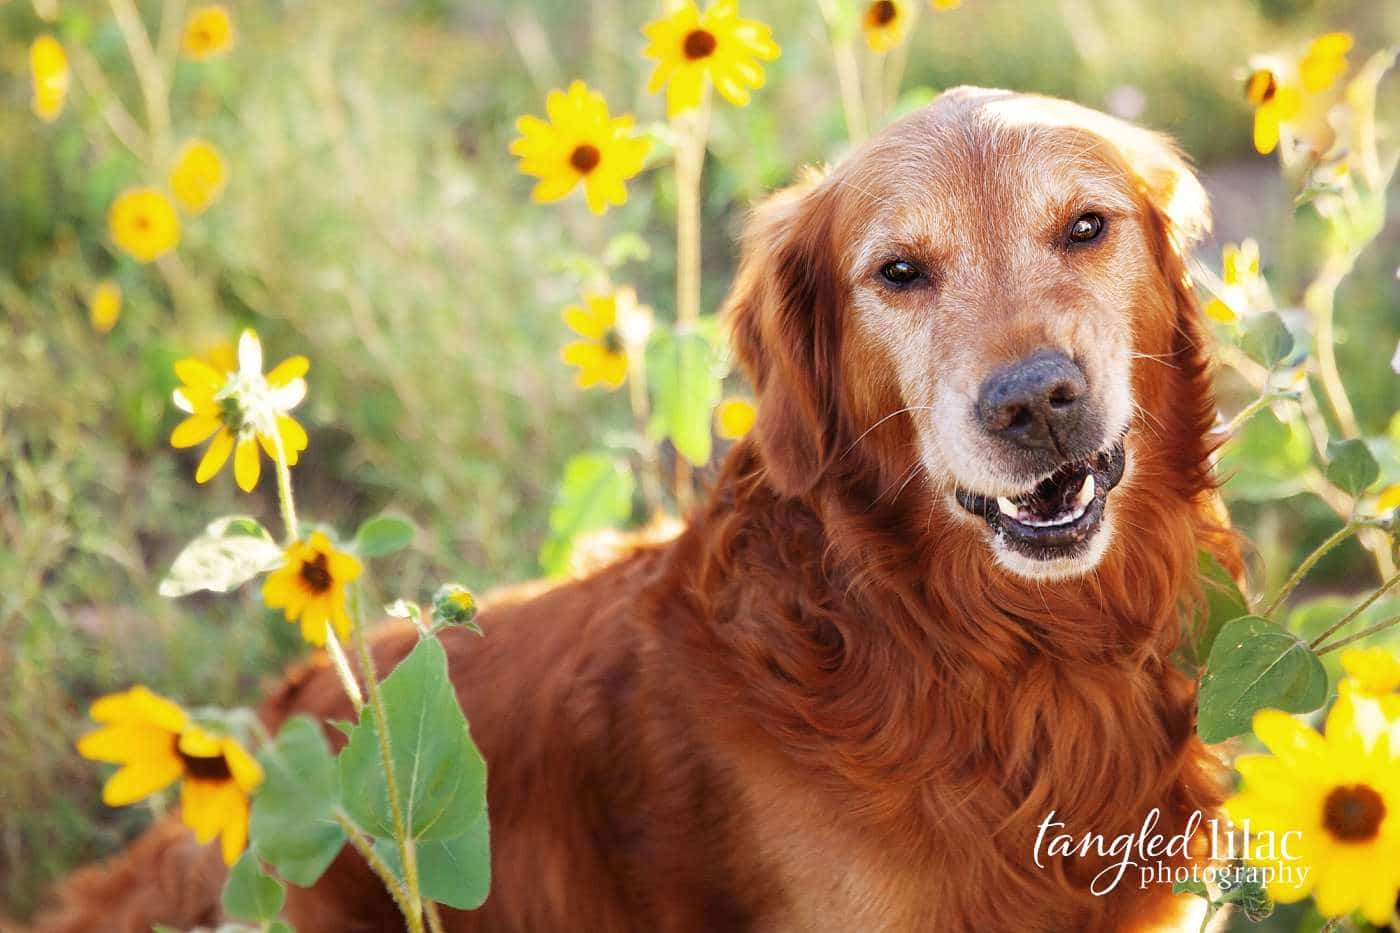 Old retriever laughing at camera in sunflowers